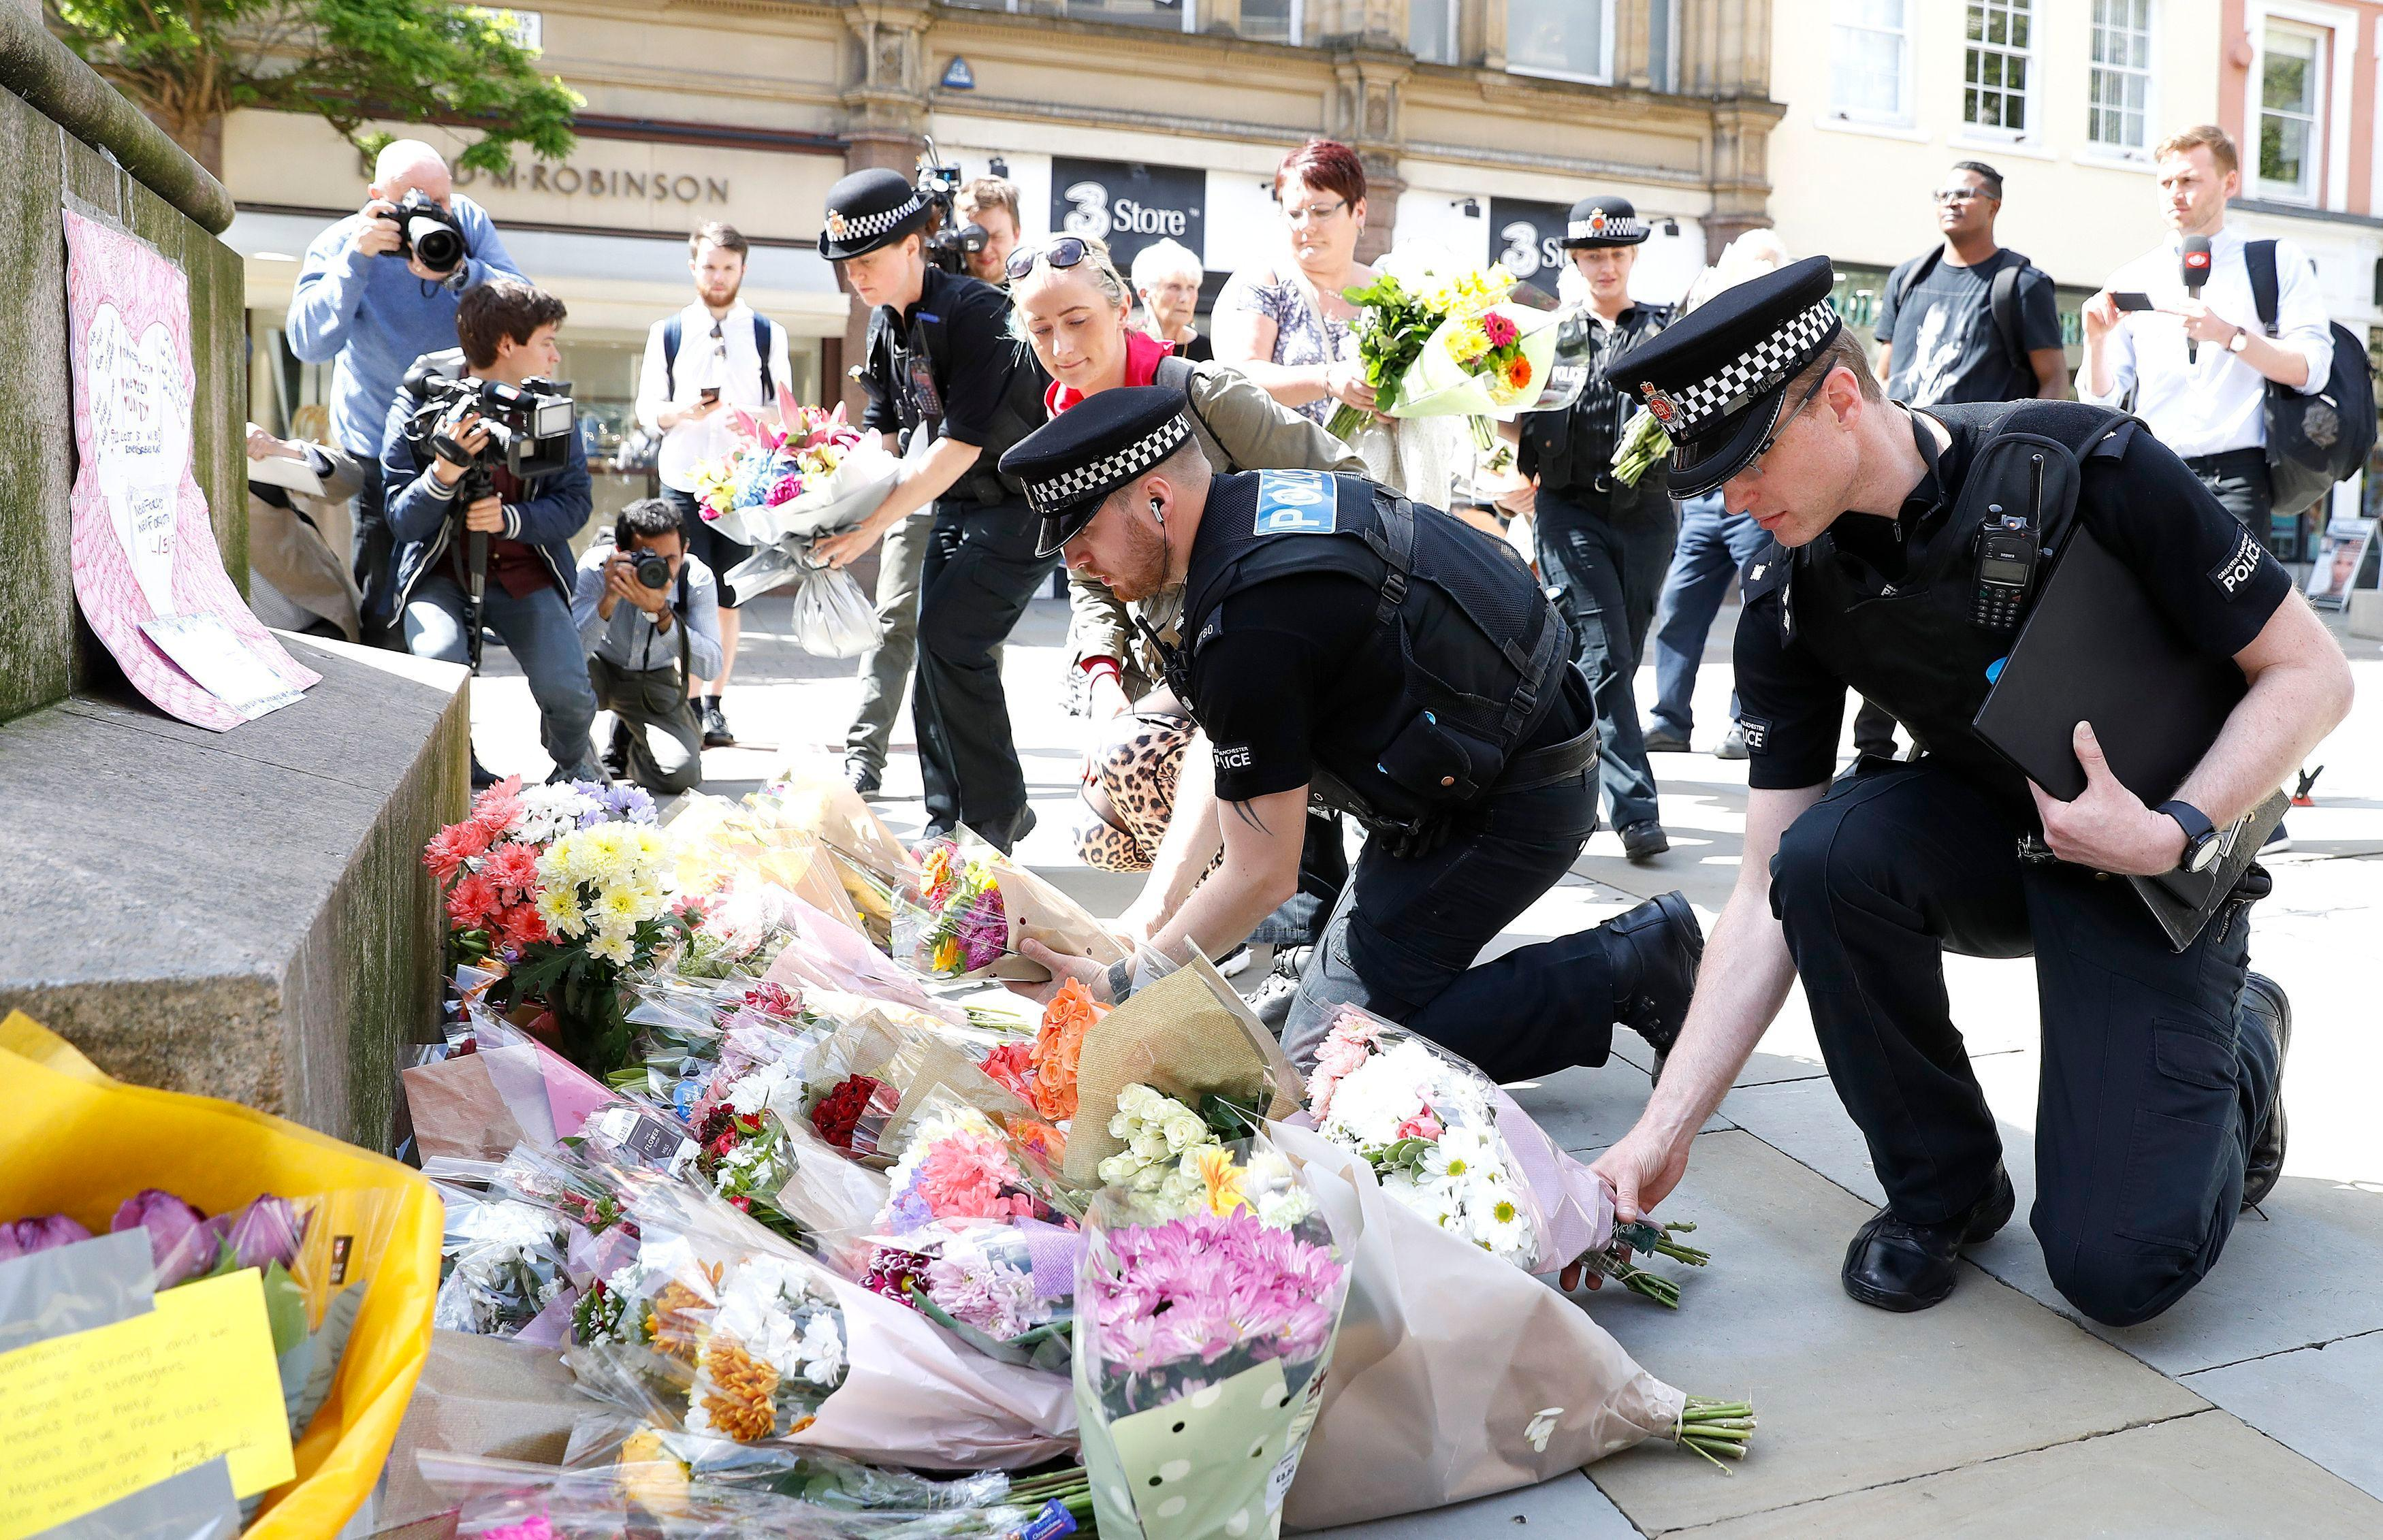 Police offices add to the flowers for the victims of Monday night pop concert explosion, in St Ann's Square, Manchester,  Tuesday May 23, 2017. ( Martin Rickett/PA via AP)